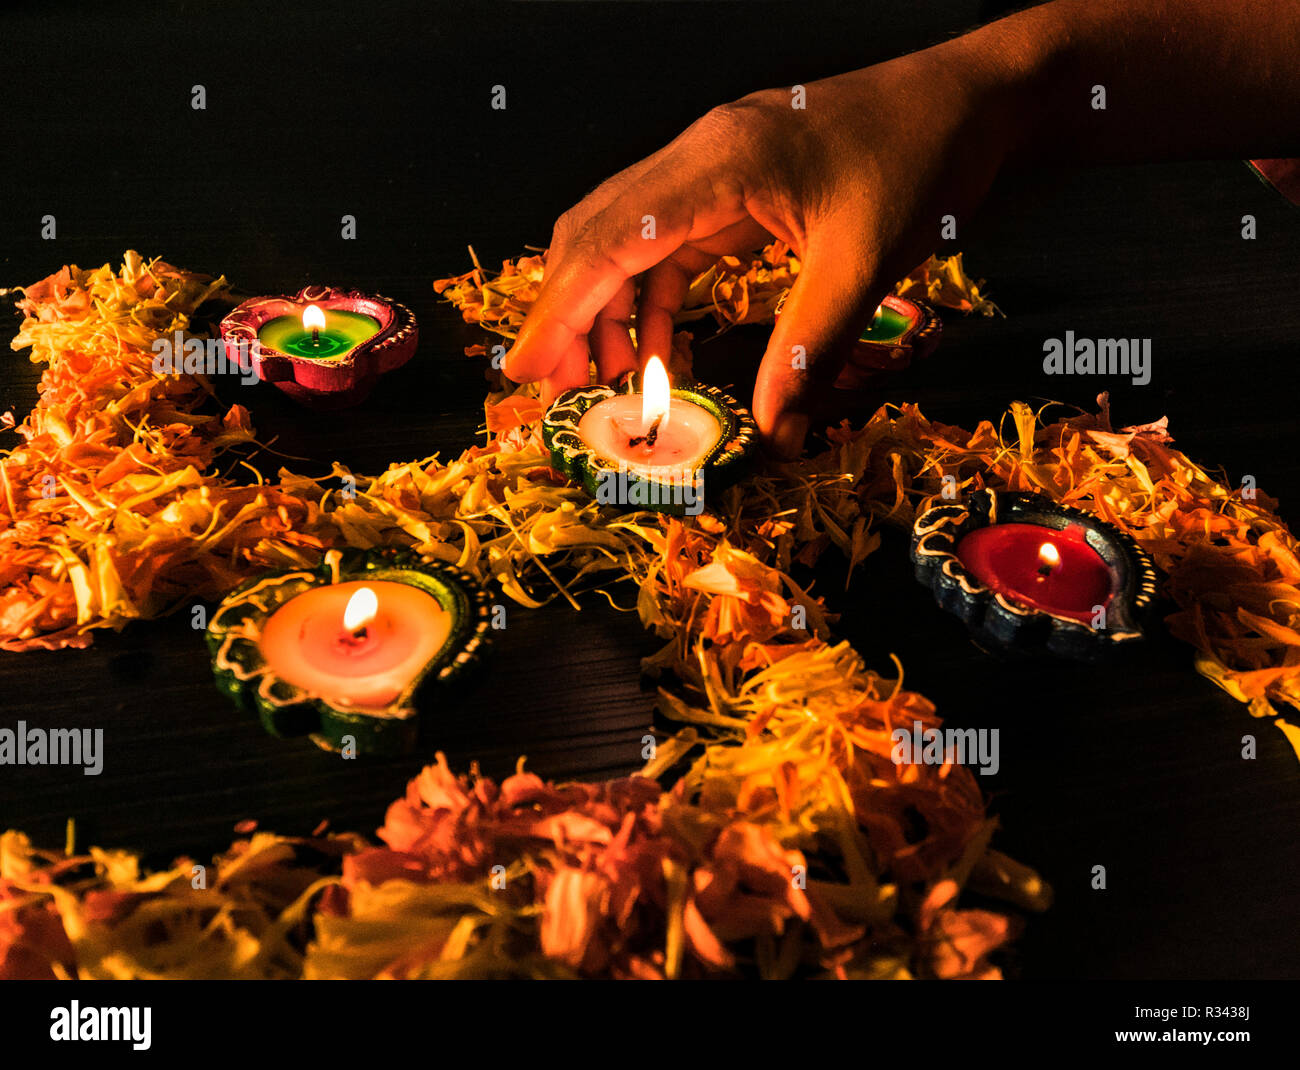 A girl lighting diyas for celebrating diwali and dhanteras festival in India Stock Photo